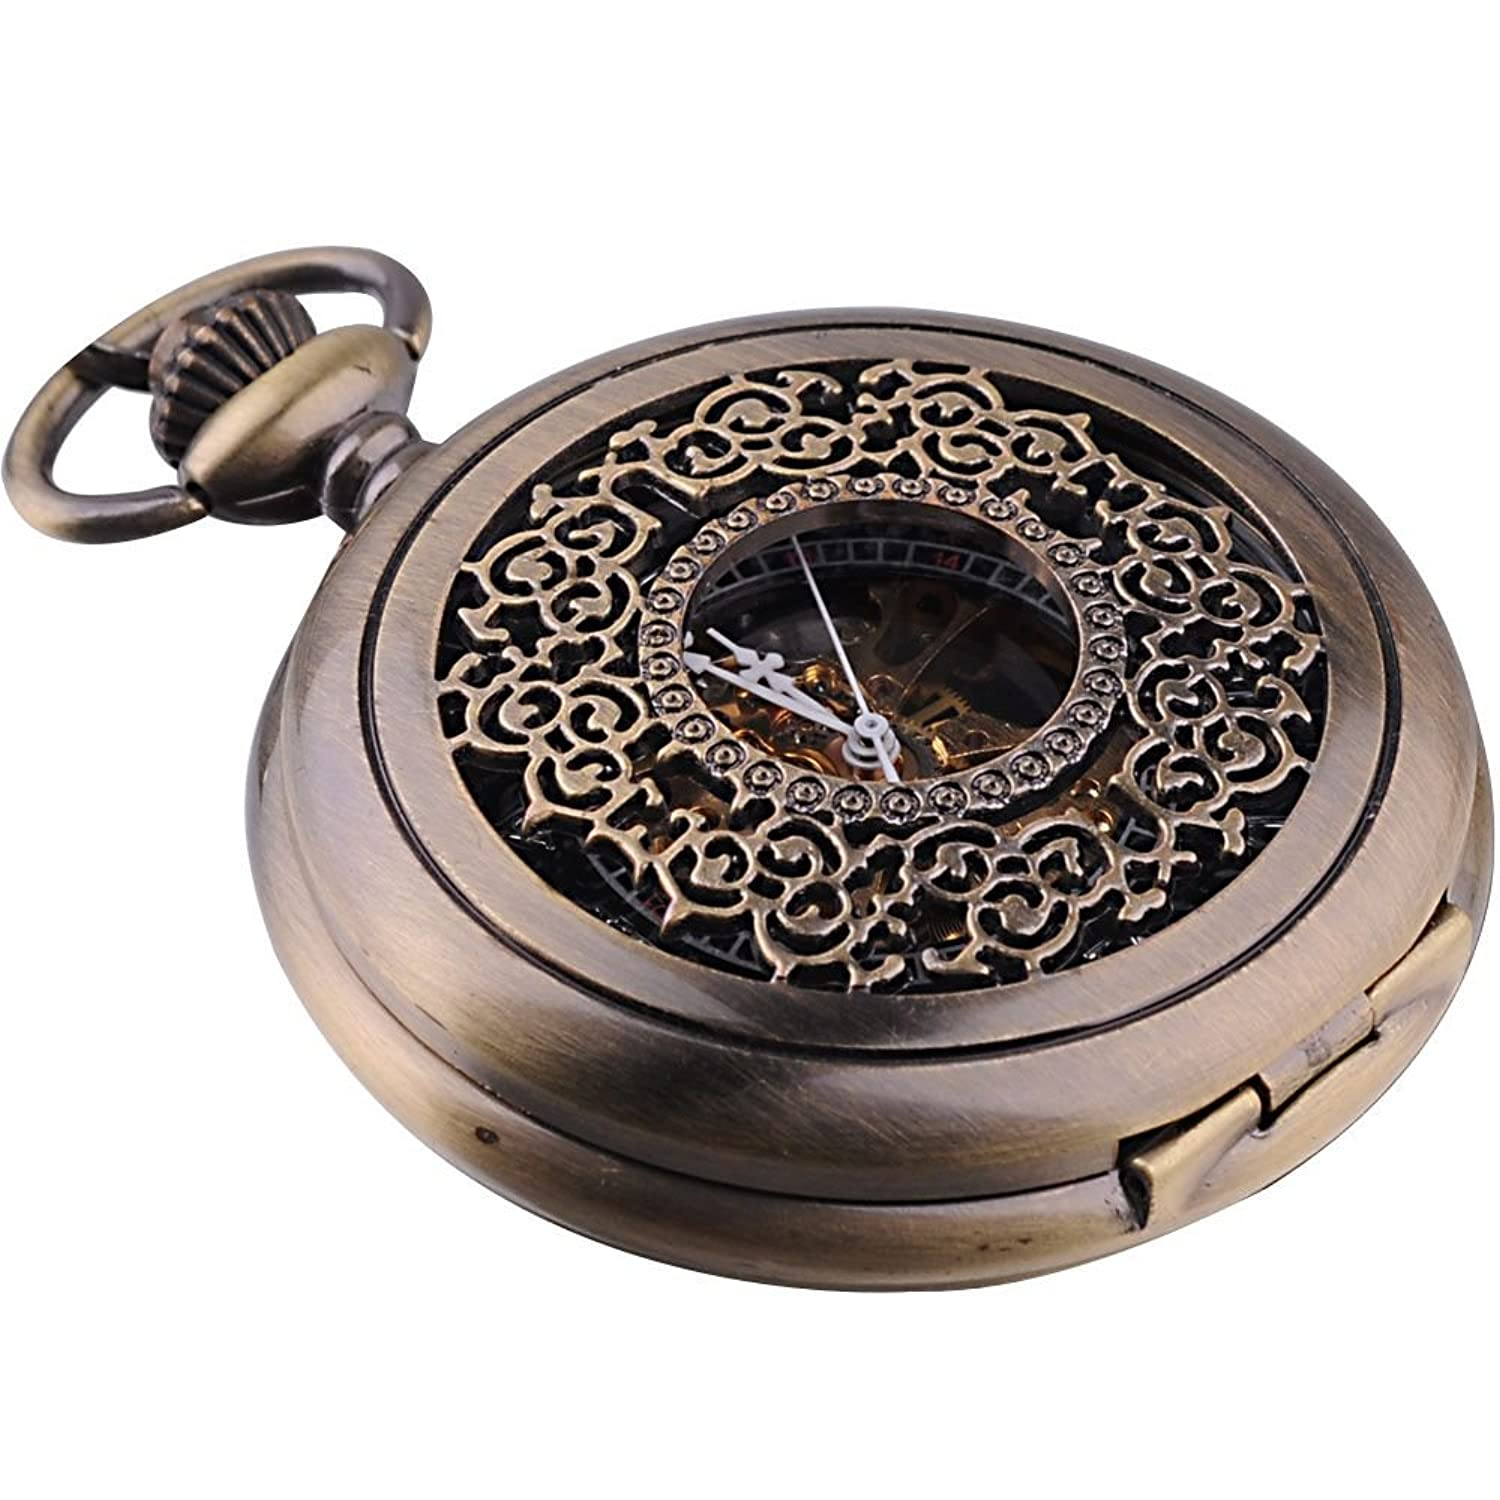 Mens pocket watches with chain images mens gold pocket watches gifts - Amazon Com Ampm24 Vintage Men S Mechanical Pocket Watch Brass Tone Chain Wk914 Watches